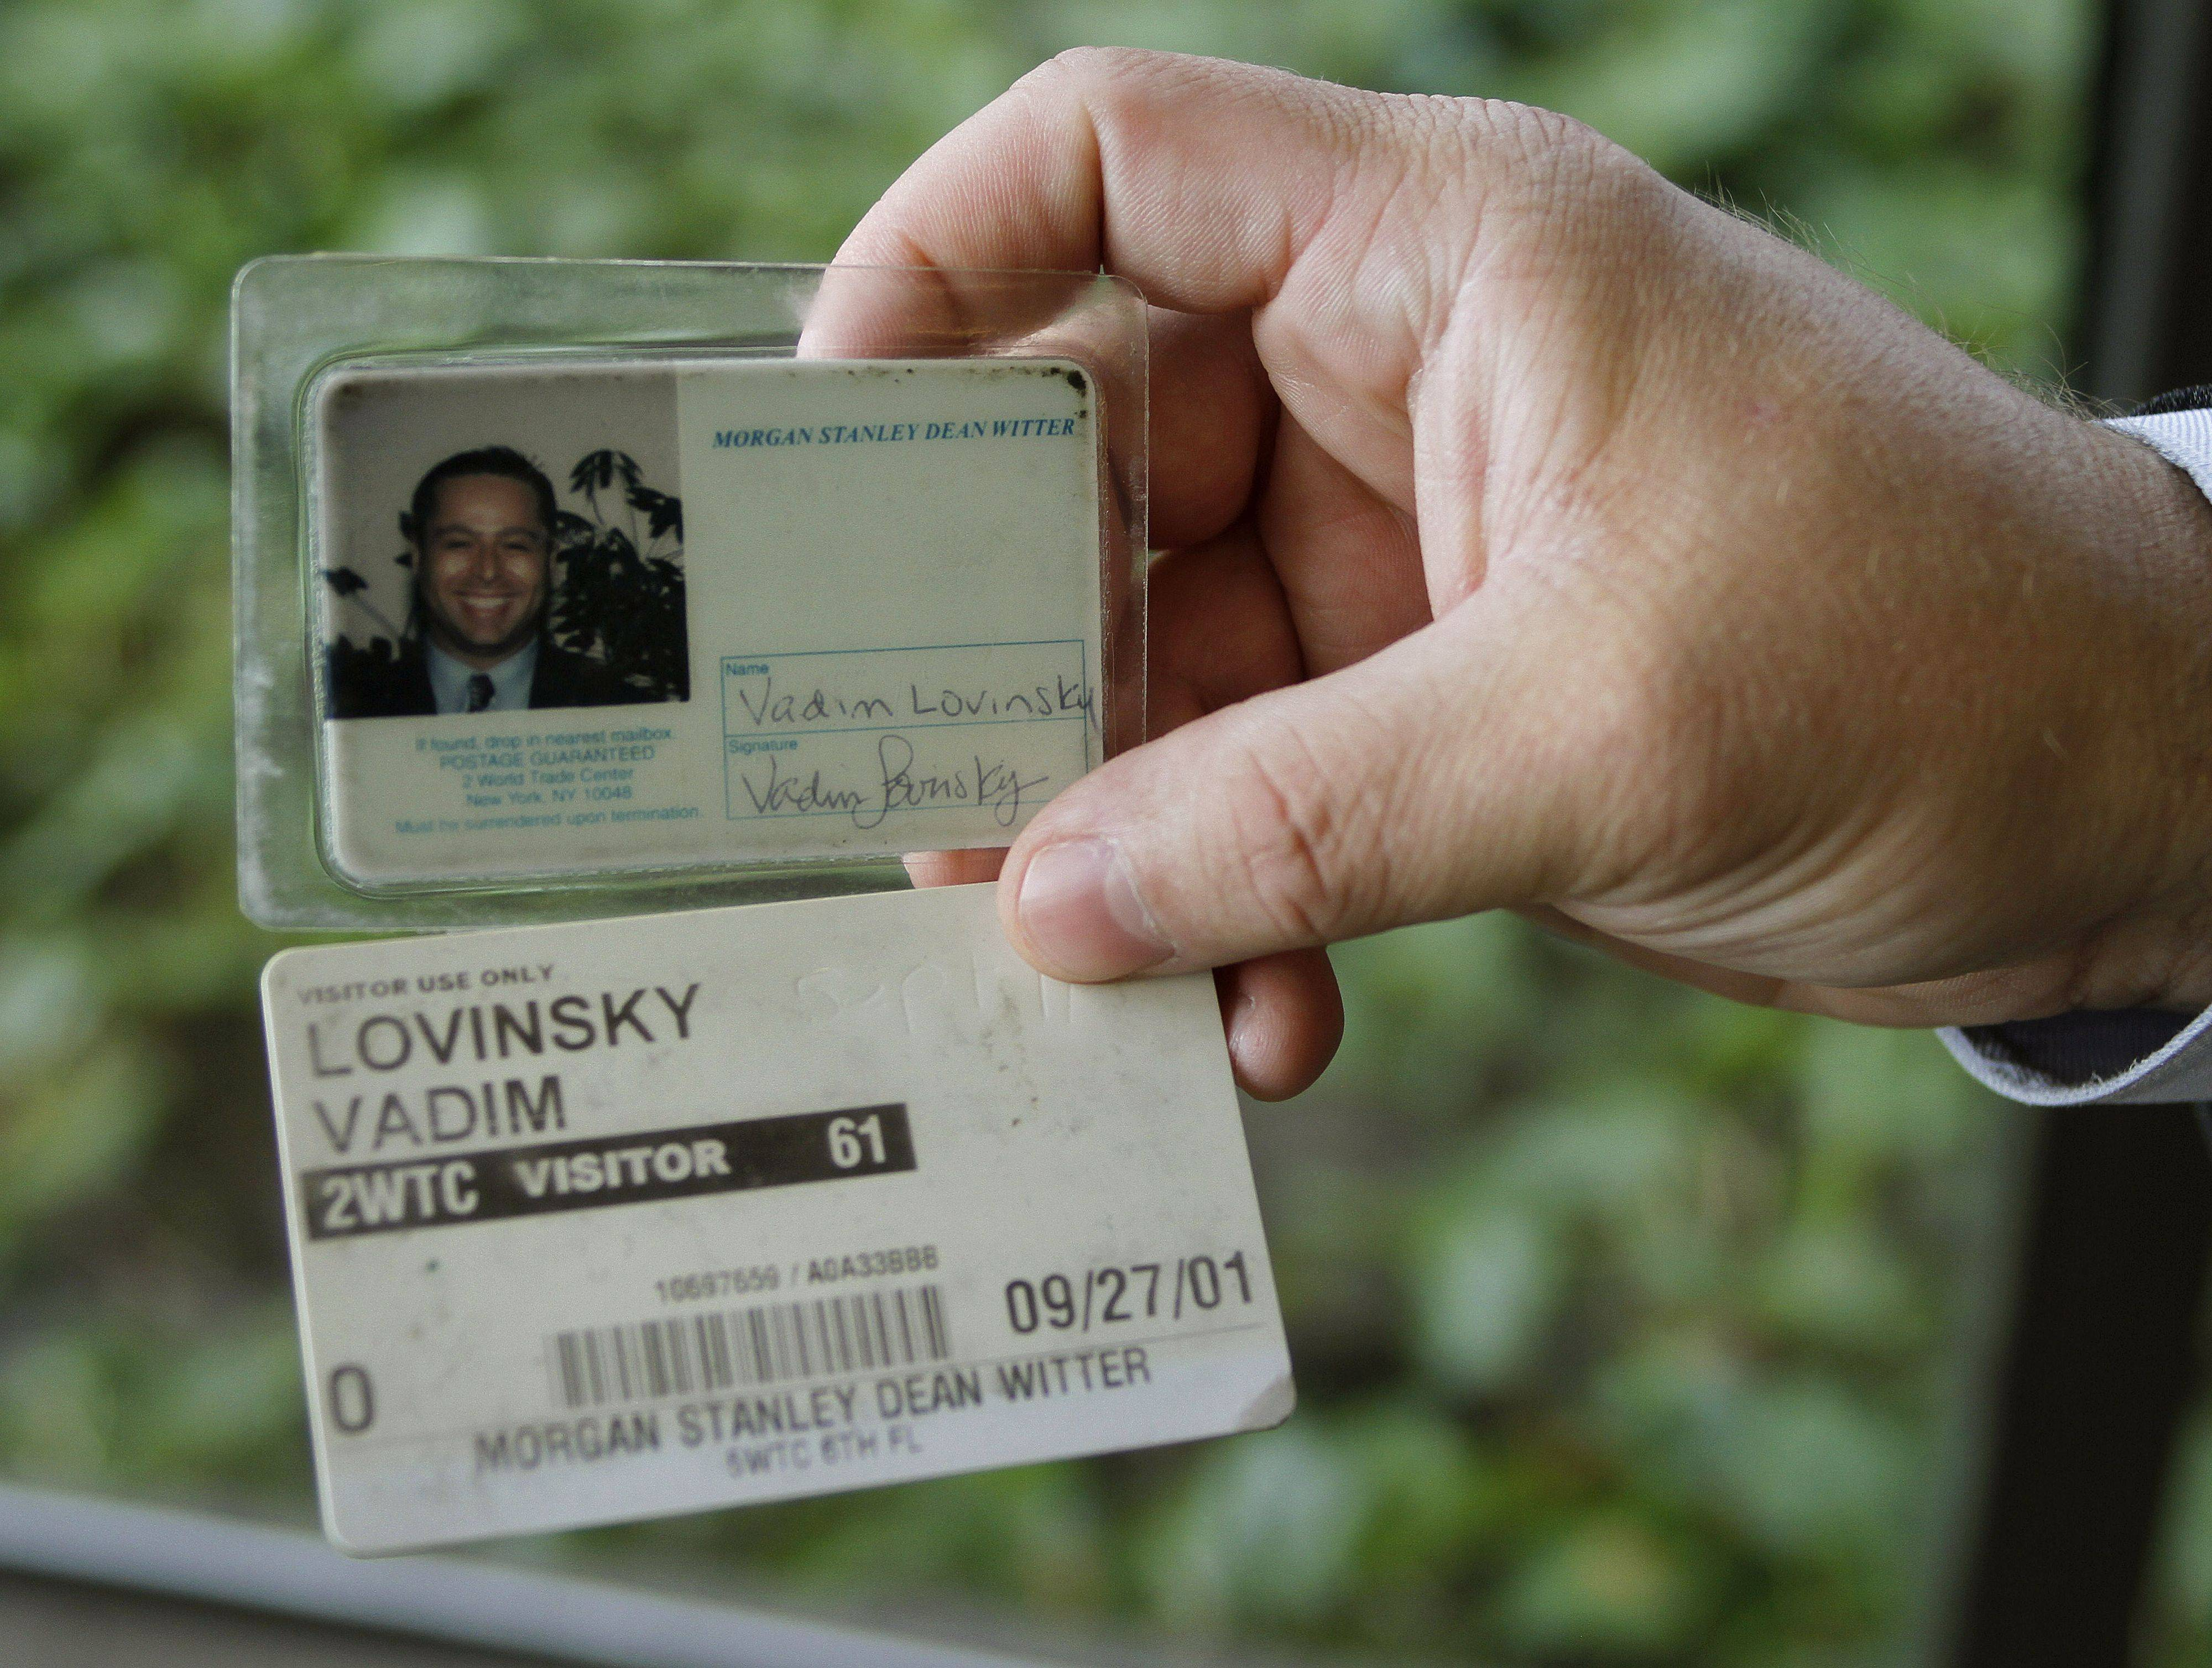 Lovinsky holds up his ID cards from the World Trade Center.